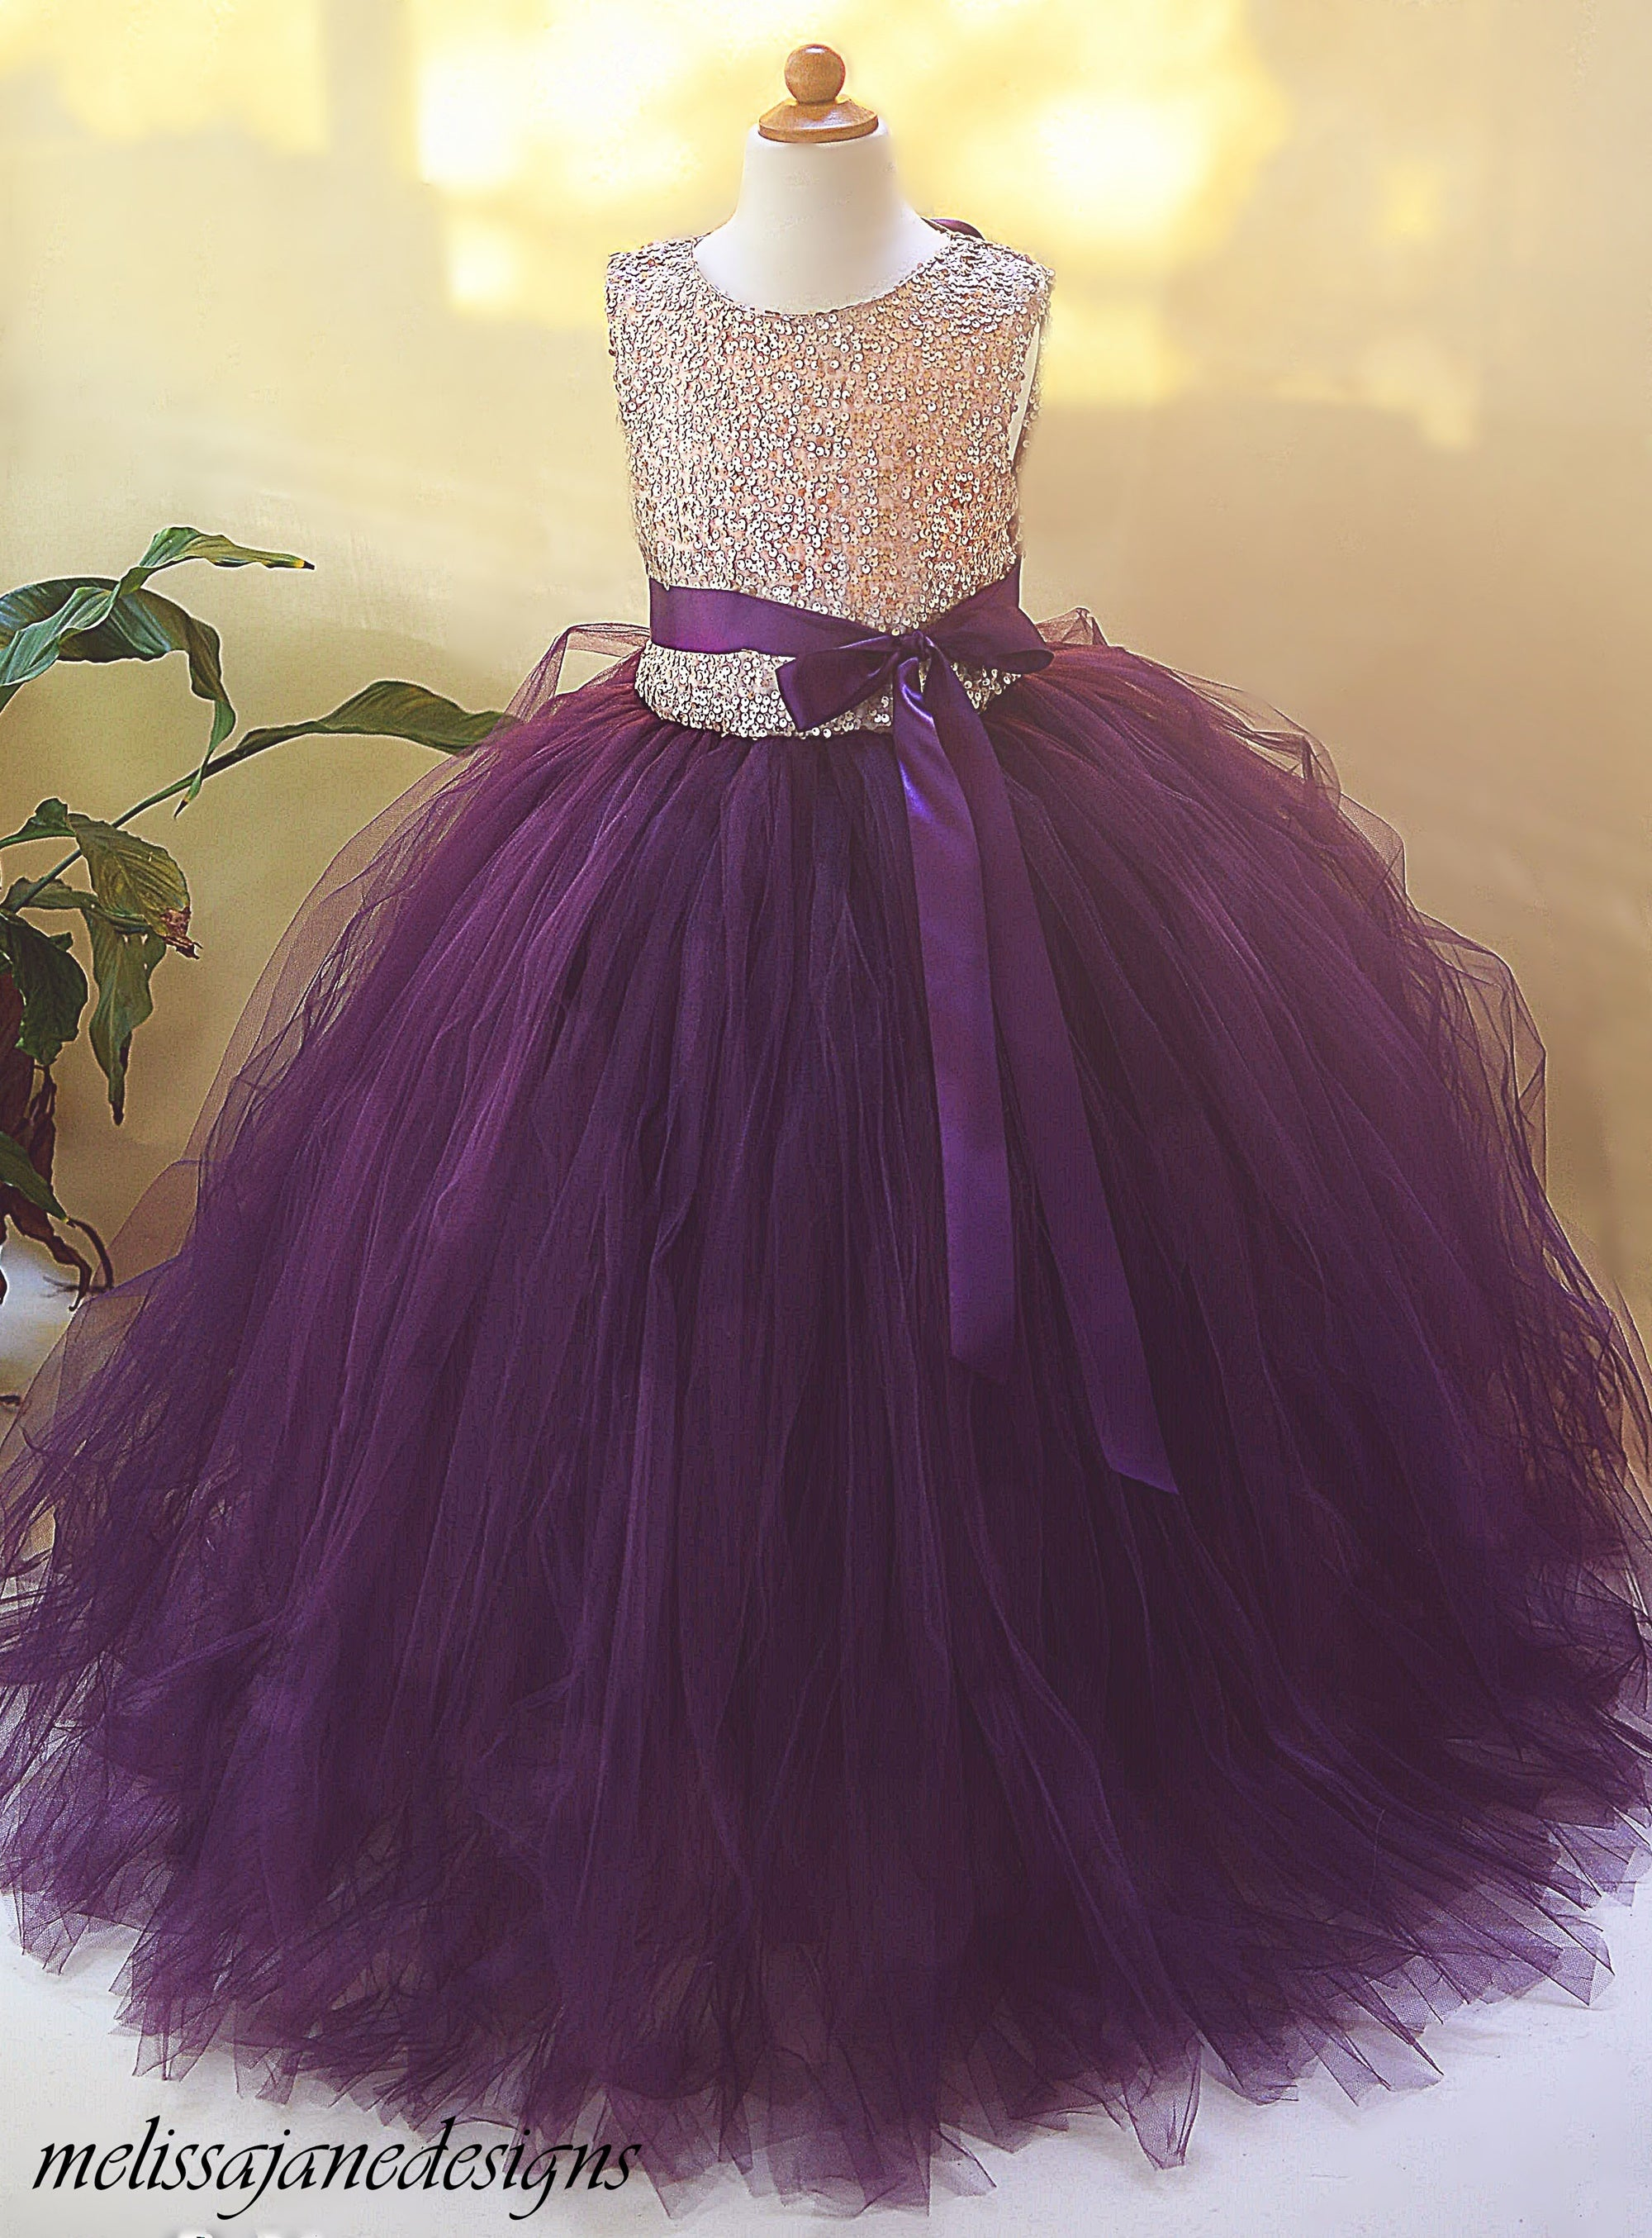 fe0d1acaae4 Gold and Plum eggplant Sequin Flower Girl Dress. gold and plum tulle girls  dress ...